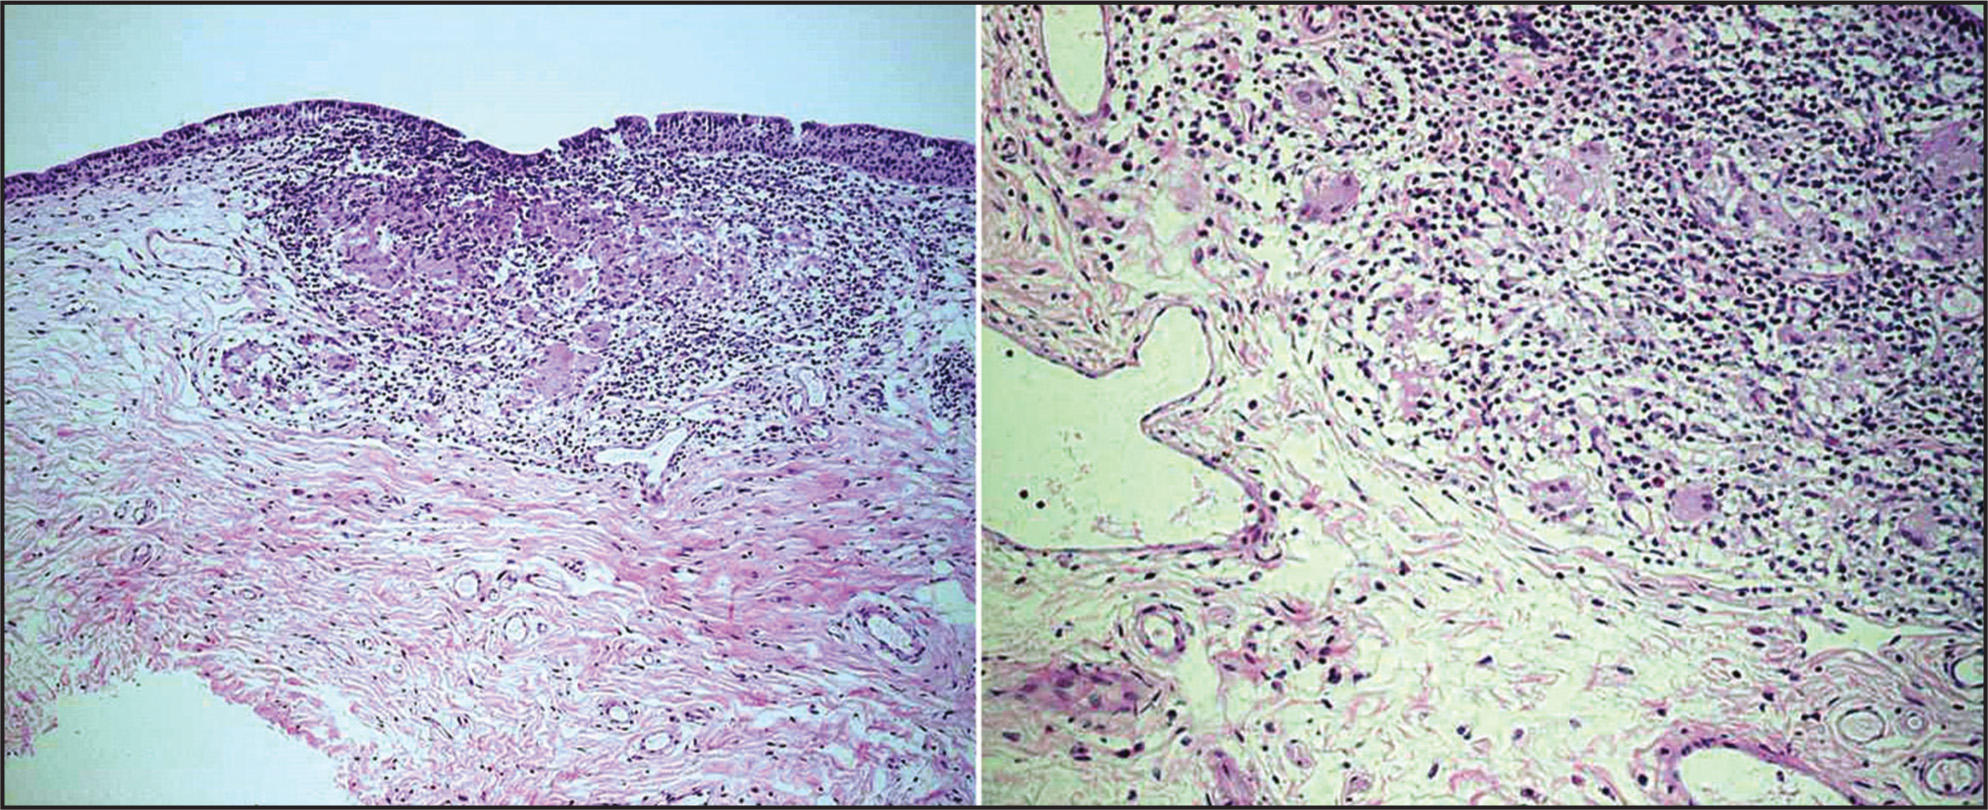 Conjunctival biopsy revealing non-caseating granulomas with associated lymphocytes and epithelioid cells (hematoxylin–eosin stain, original magnification ×10 [left] and ×20 [right]).